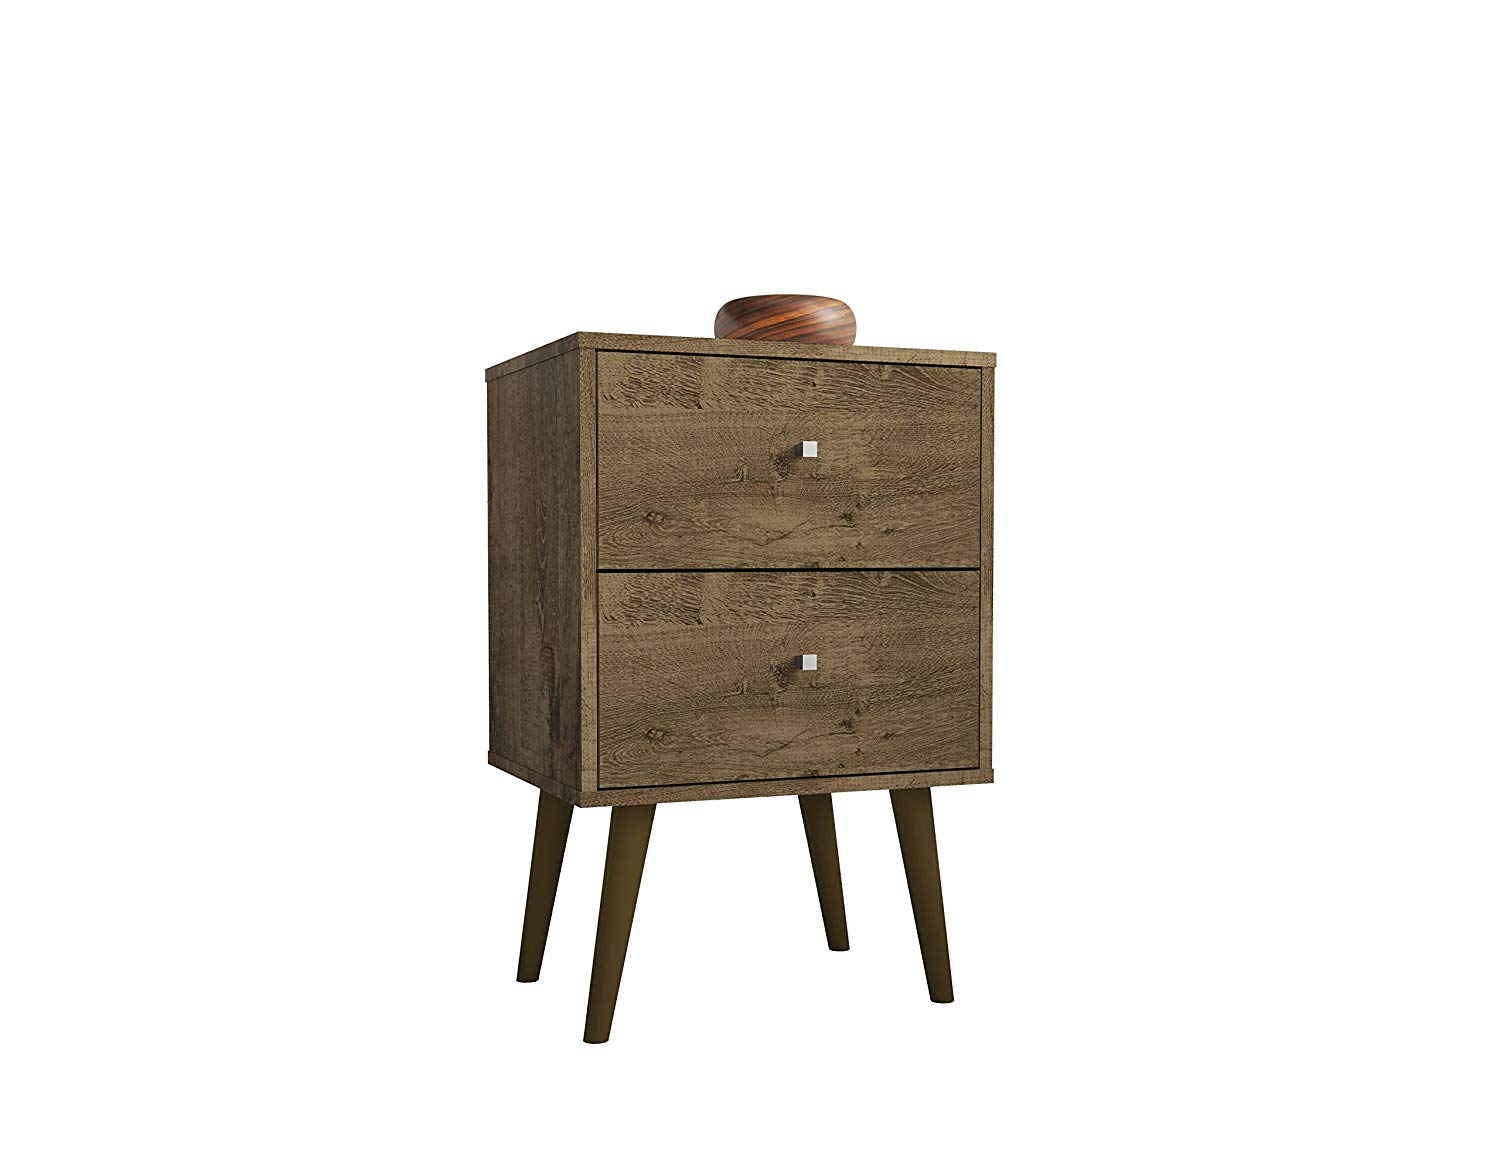 Mid Century Modern 2 Drawer Nightstand with Solid Wood Splayed Legs (Rustic Brown)